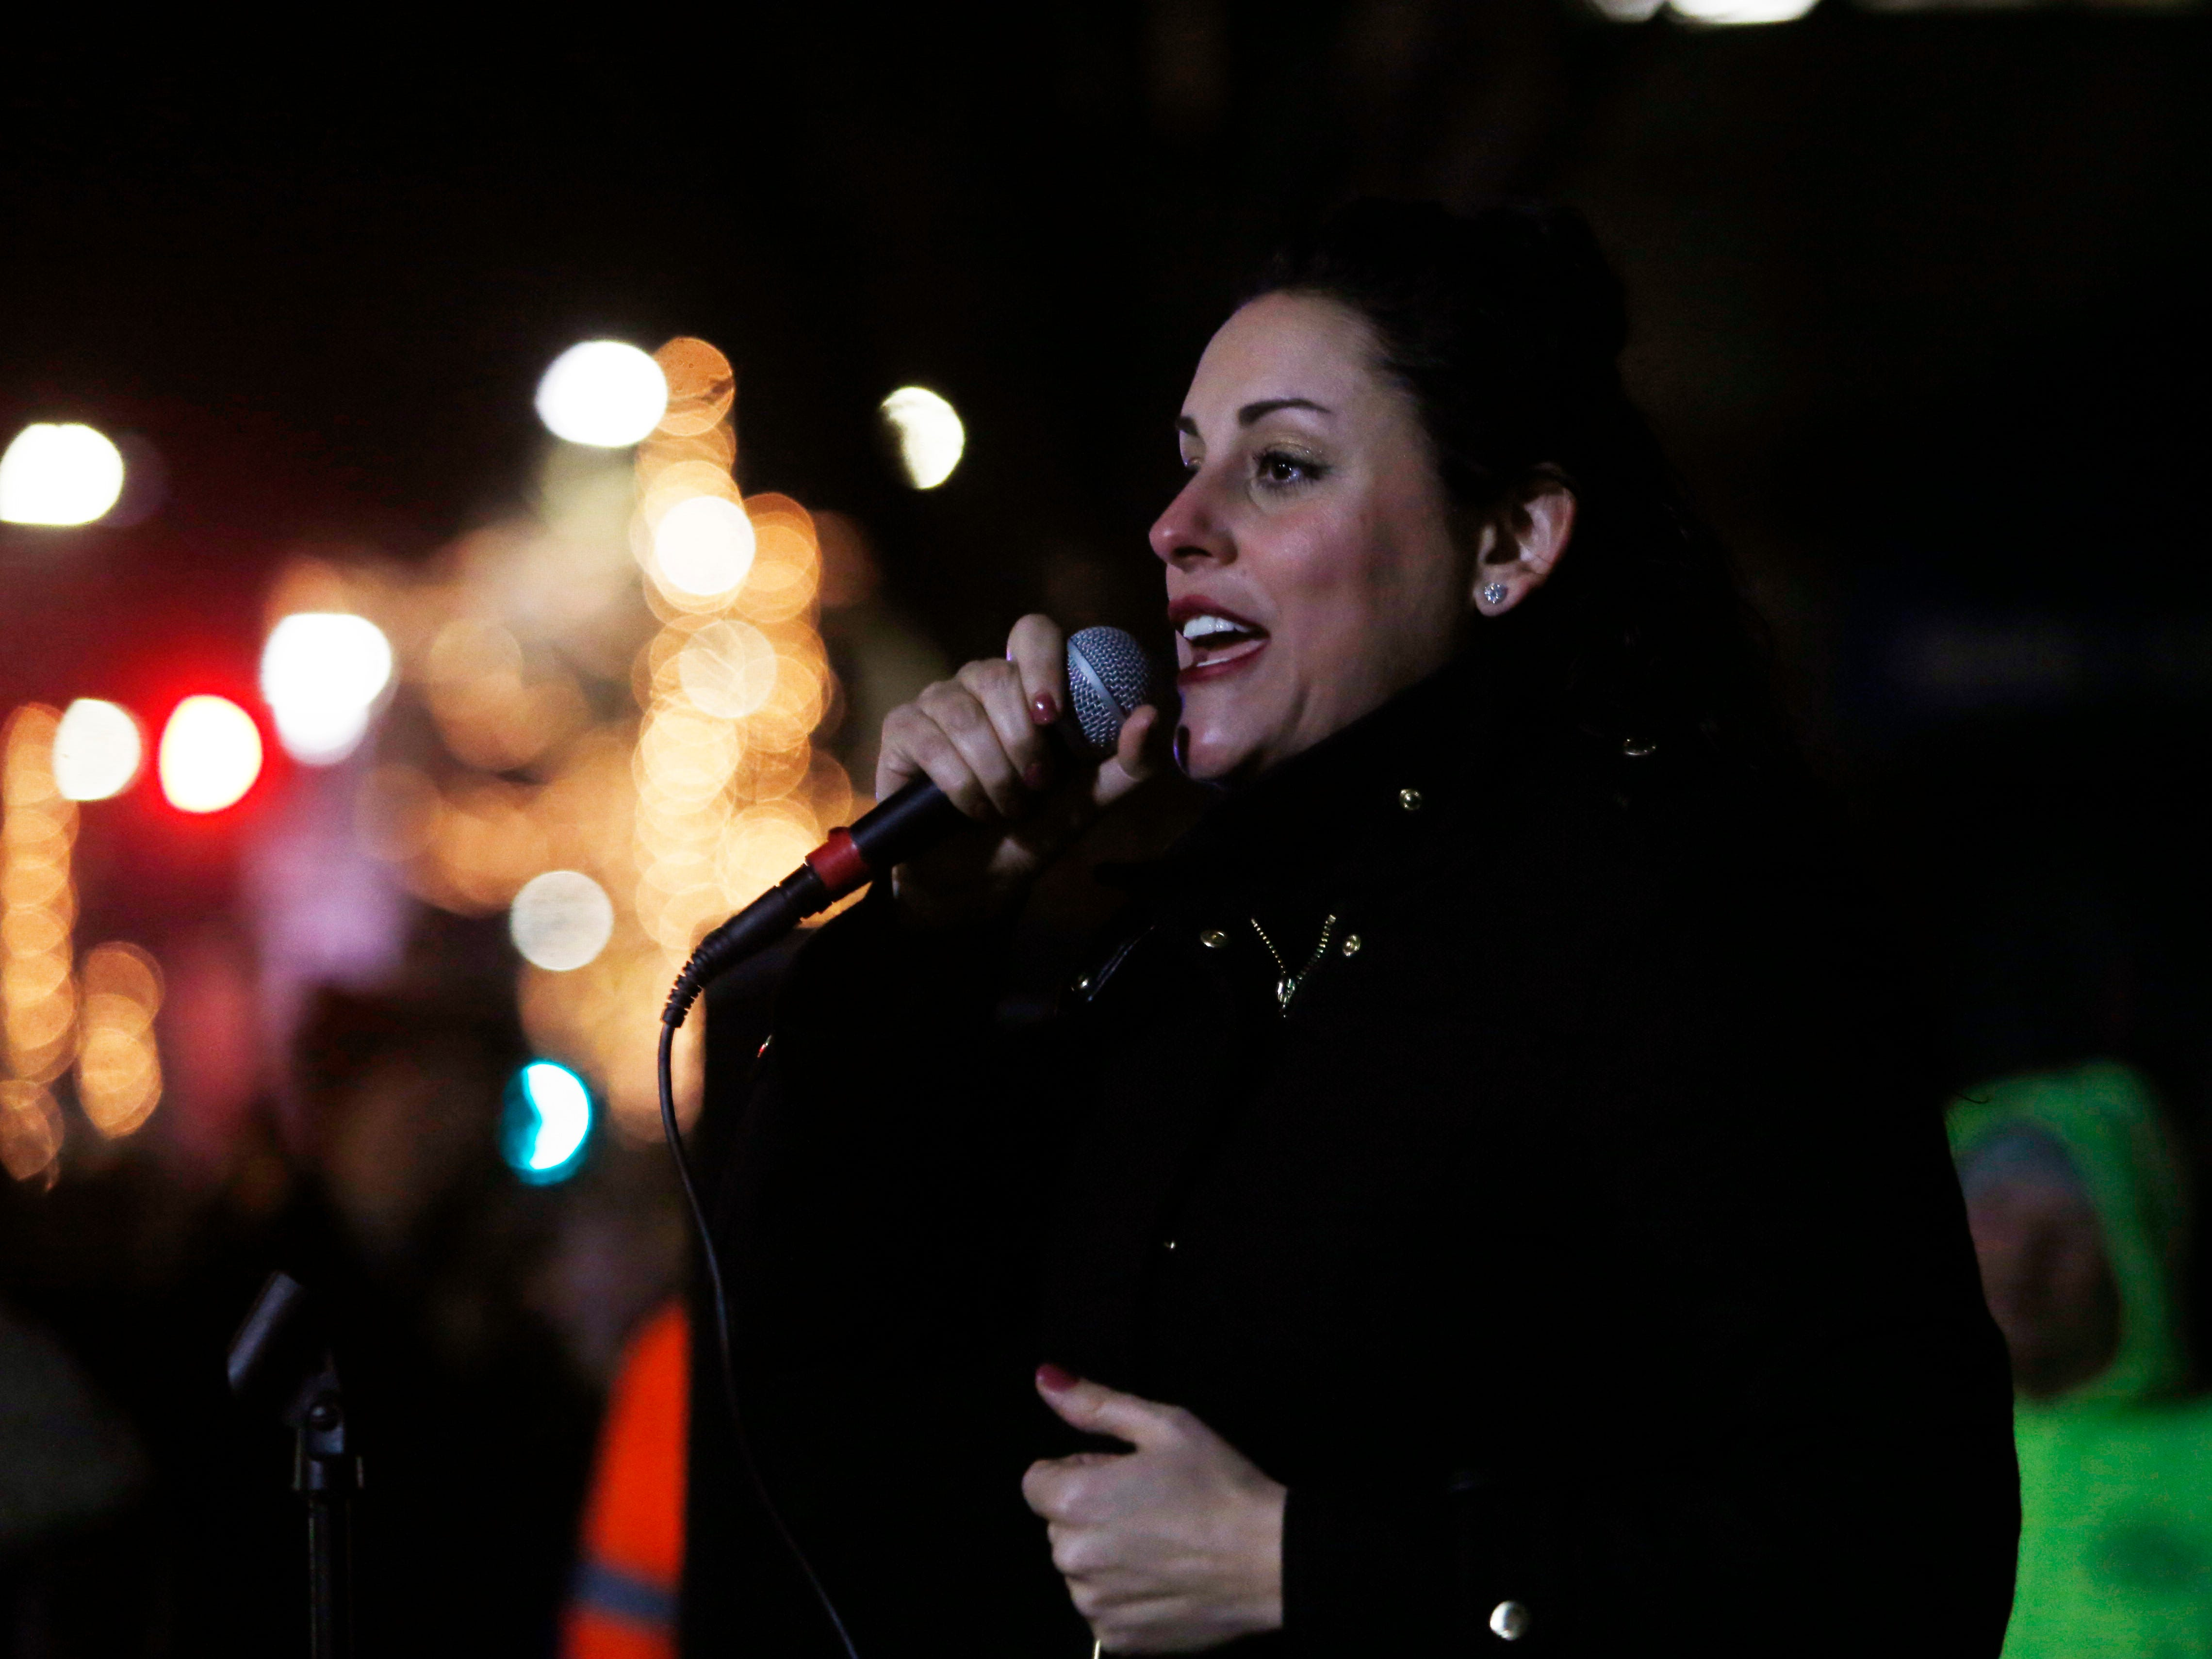 Michelle Barone performs during the Celebration of Lights Parade in the City of Poughkeepsie on November 30, 2018.